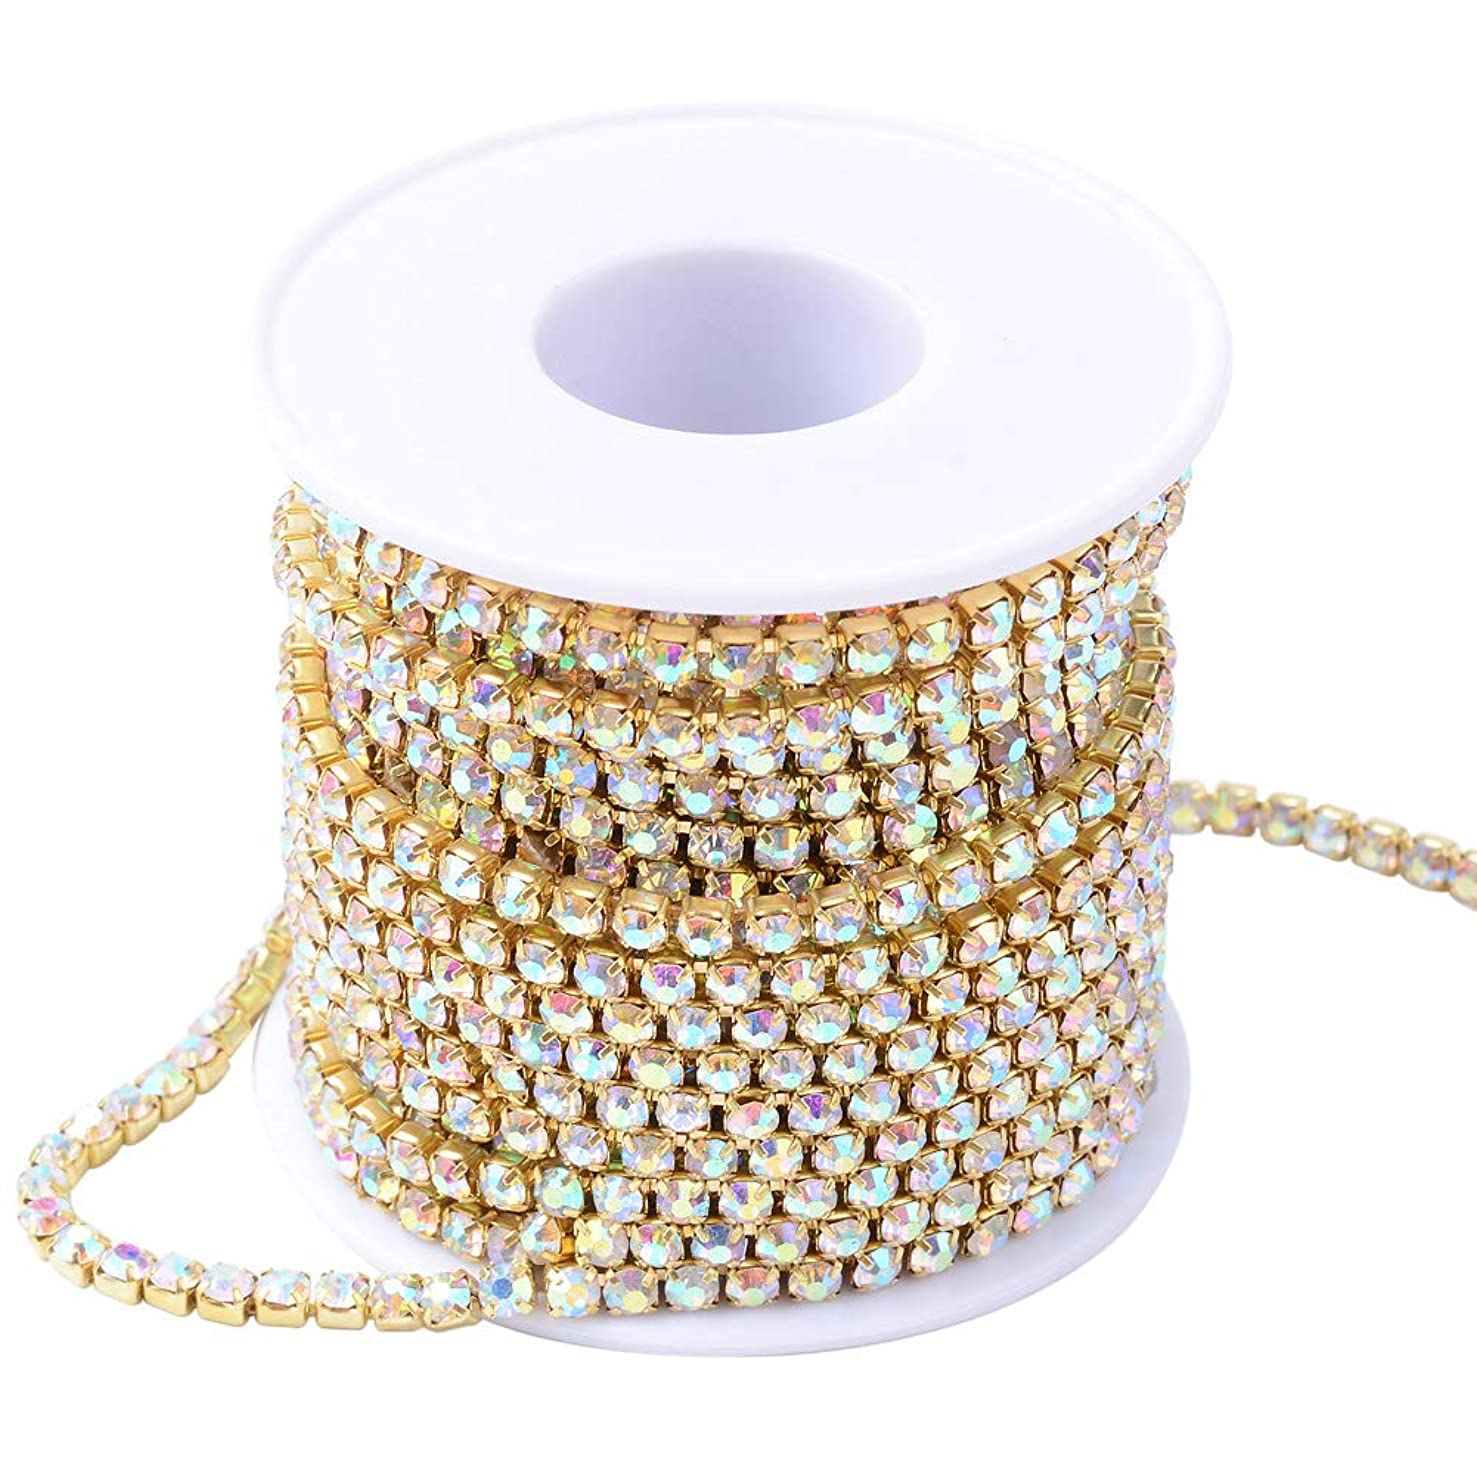 NBEADS 1 Roll of 4mm Clear Rhinestone Diamante Golden Plated Crystal AB Color Chain 10 Yard Lenght for Wedding Supplies DIY Sewing Craft Jewelry Making Party Decorations